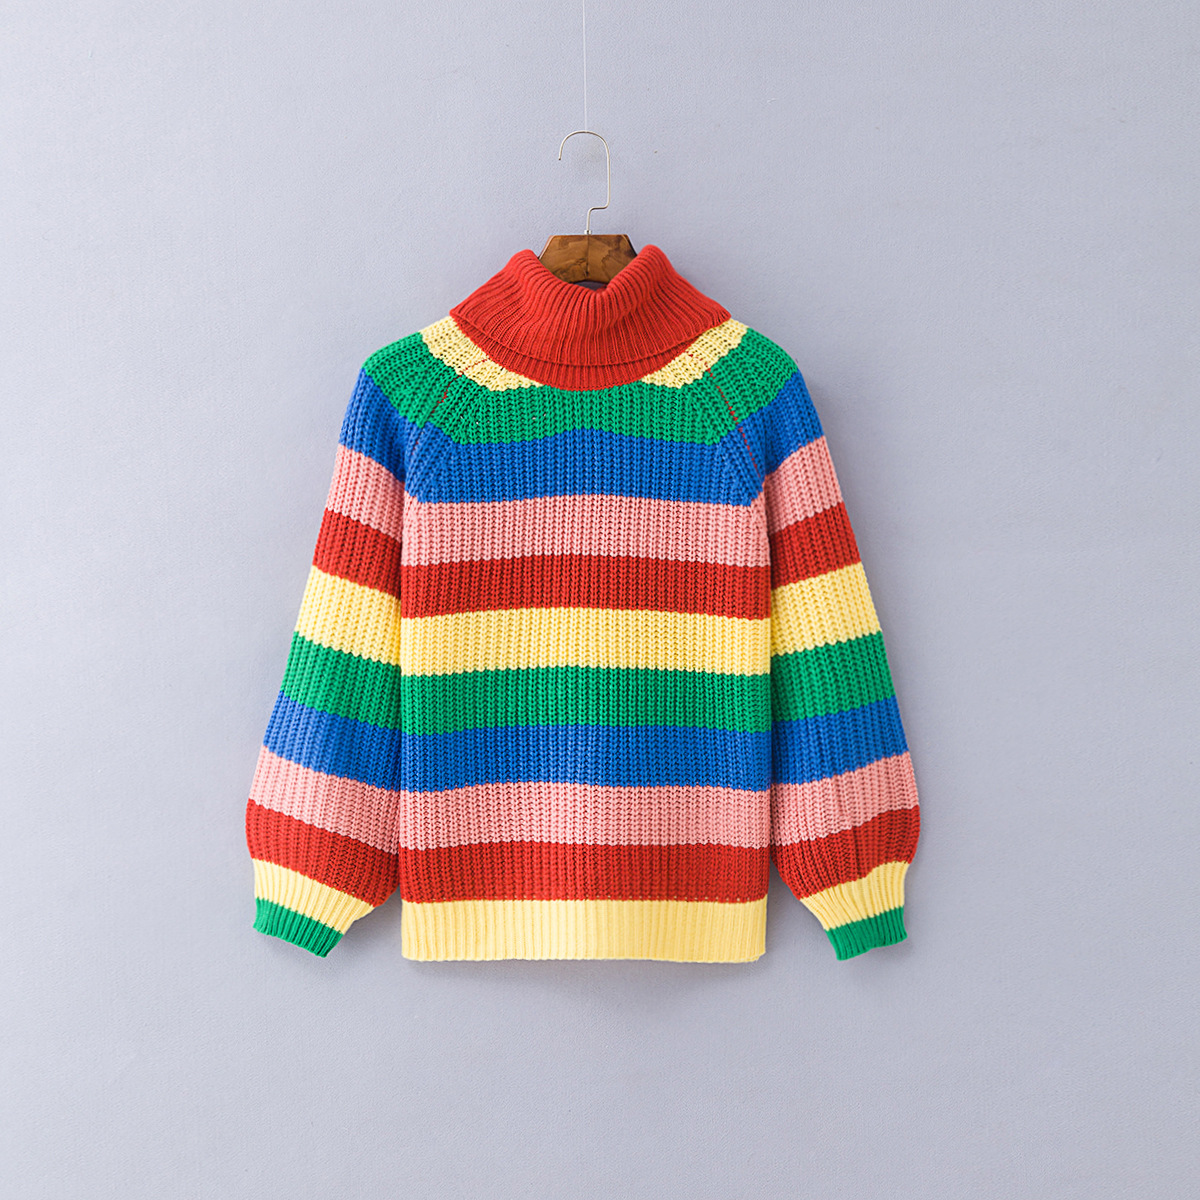 rainbow sweater girls knit sweaters women plus size pullovers full casual striped turtleneck pink harajuku fashion in Pullovers from Women 39 s Clothing